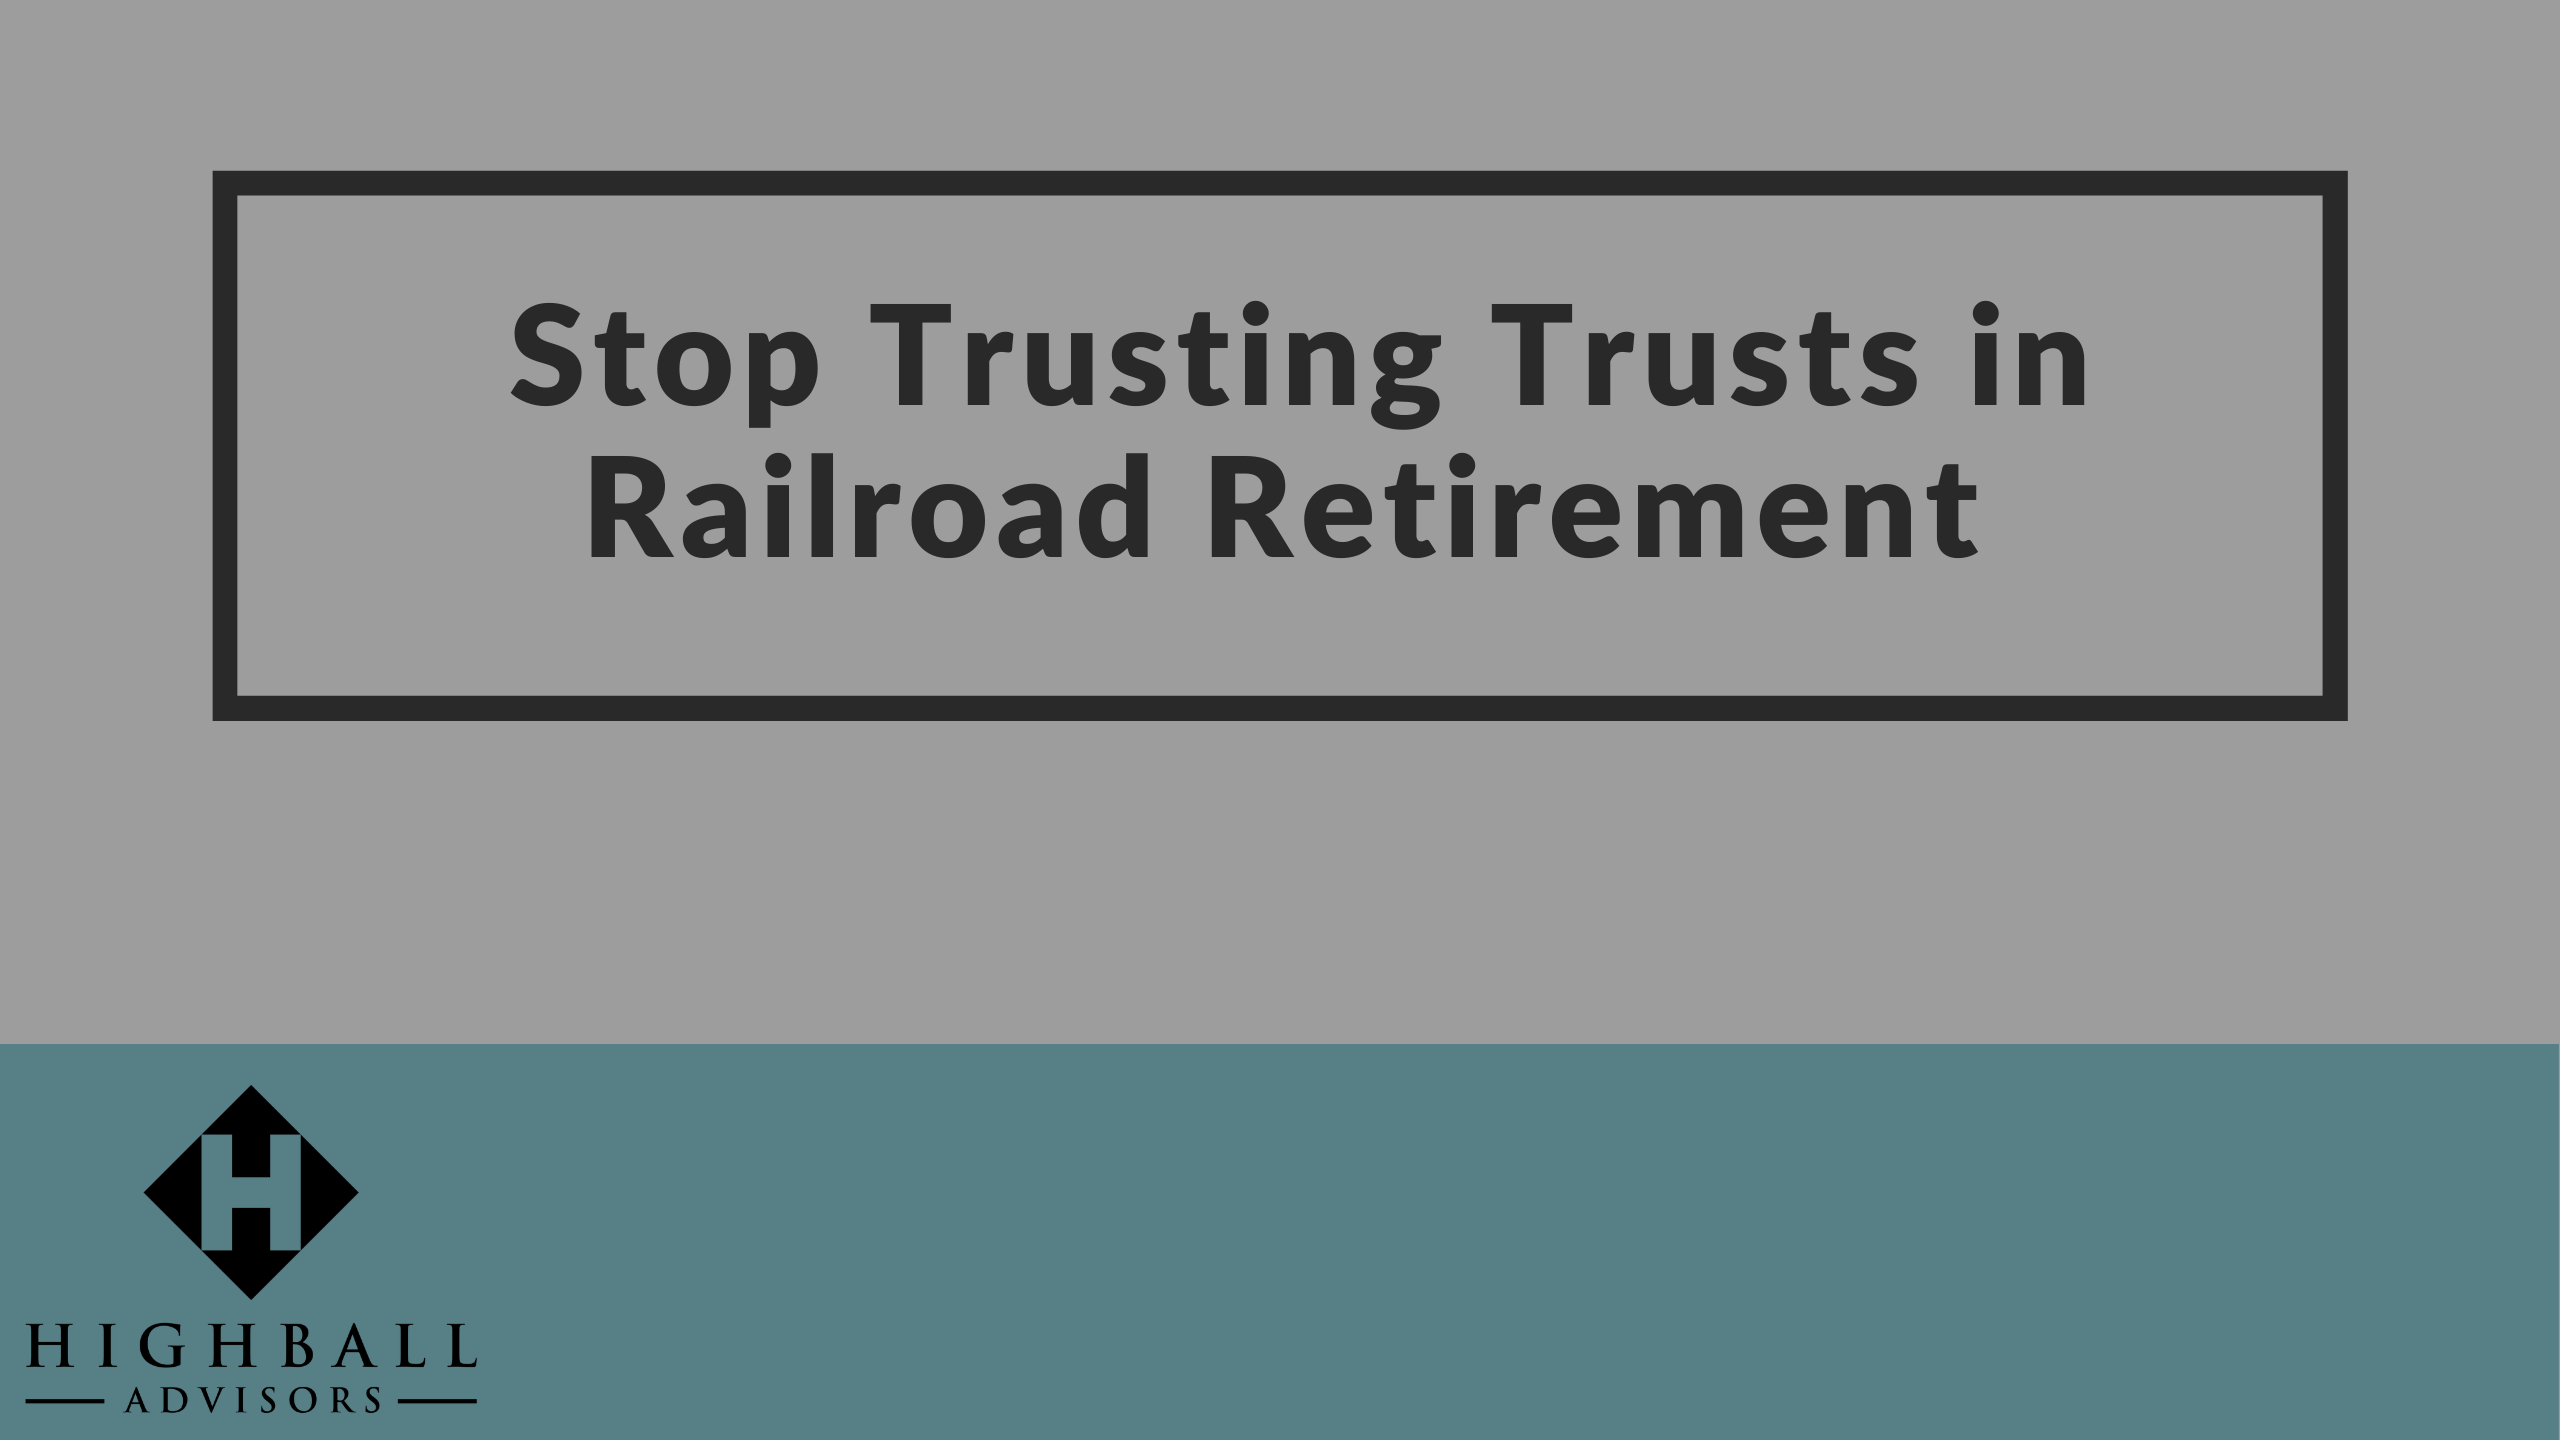 Stop Trusting Trusts in Railroad Retirement Thumbnail